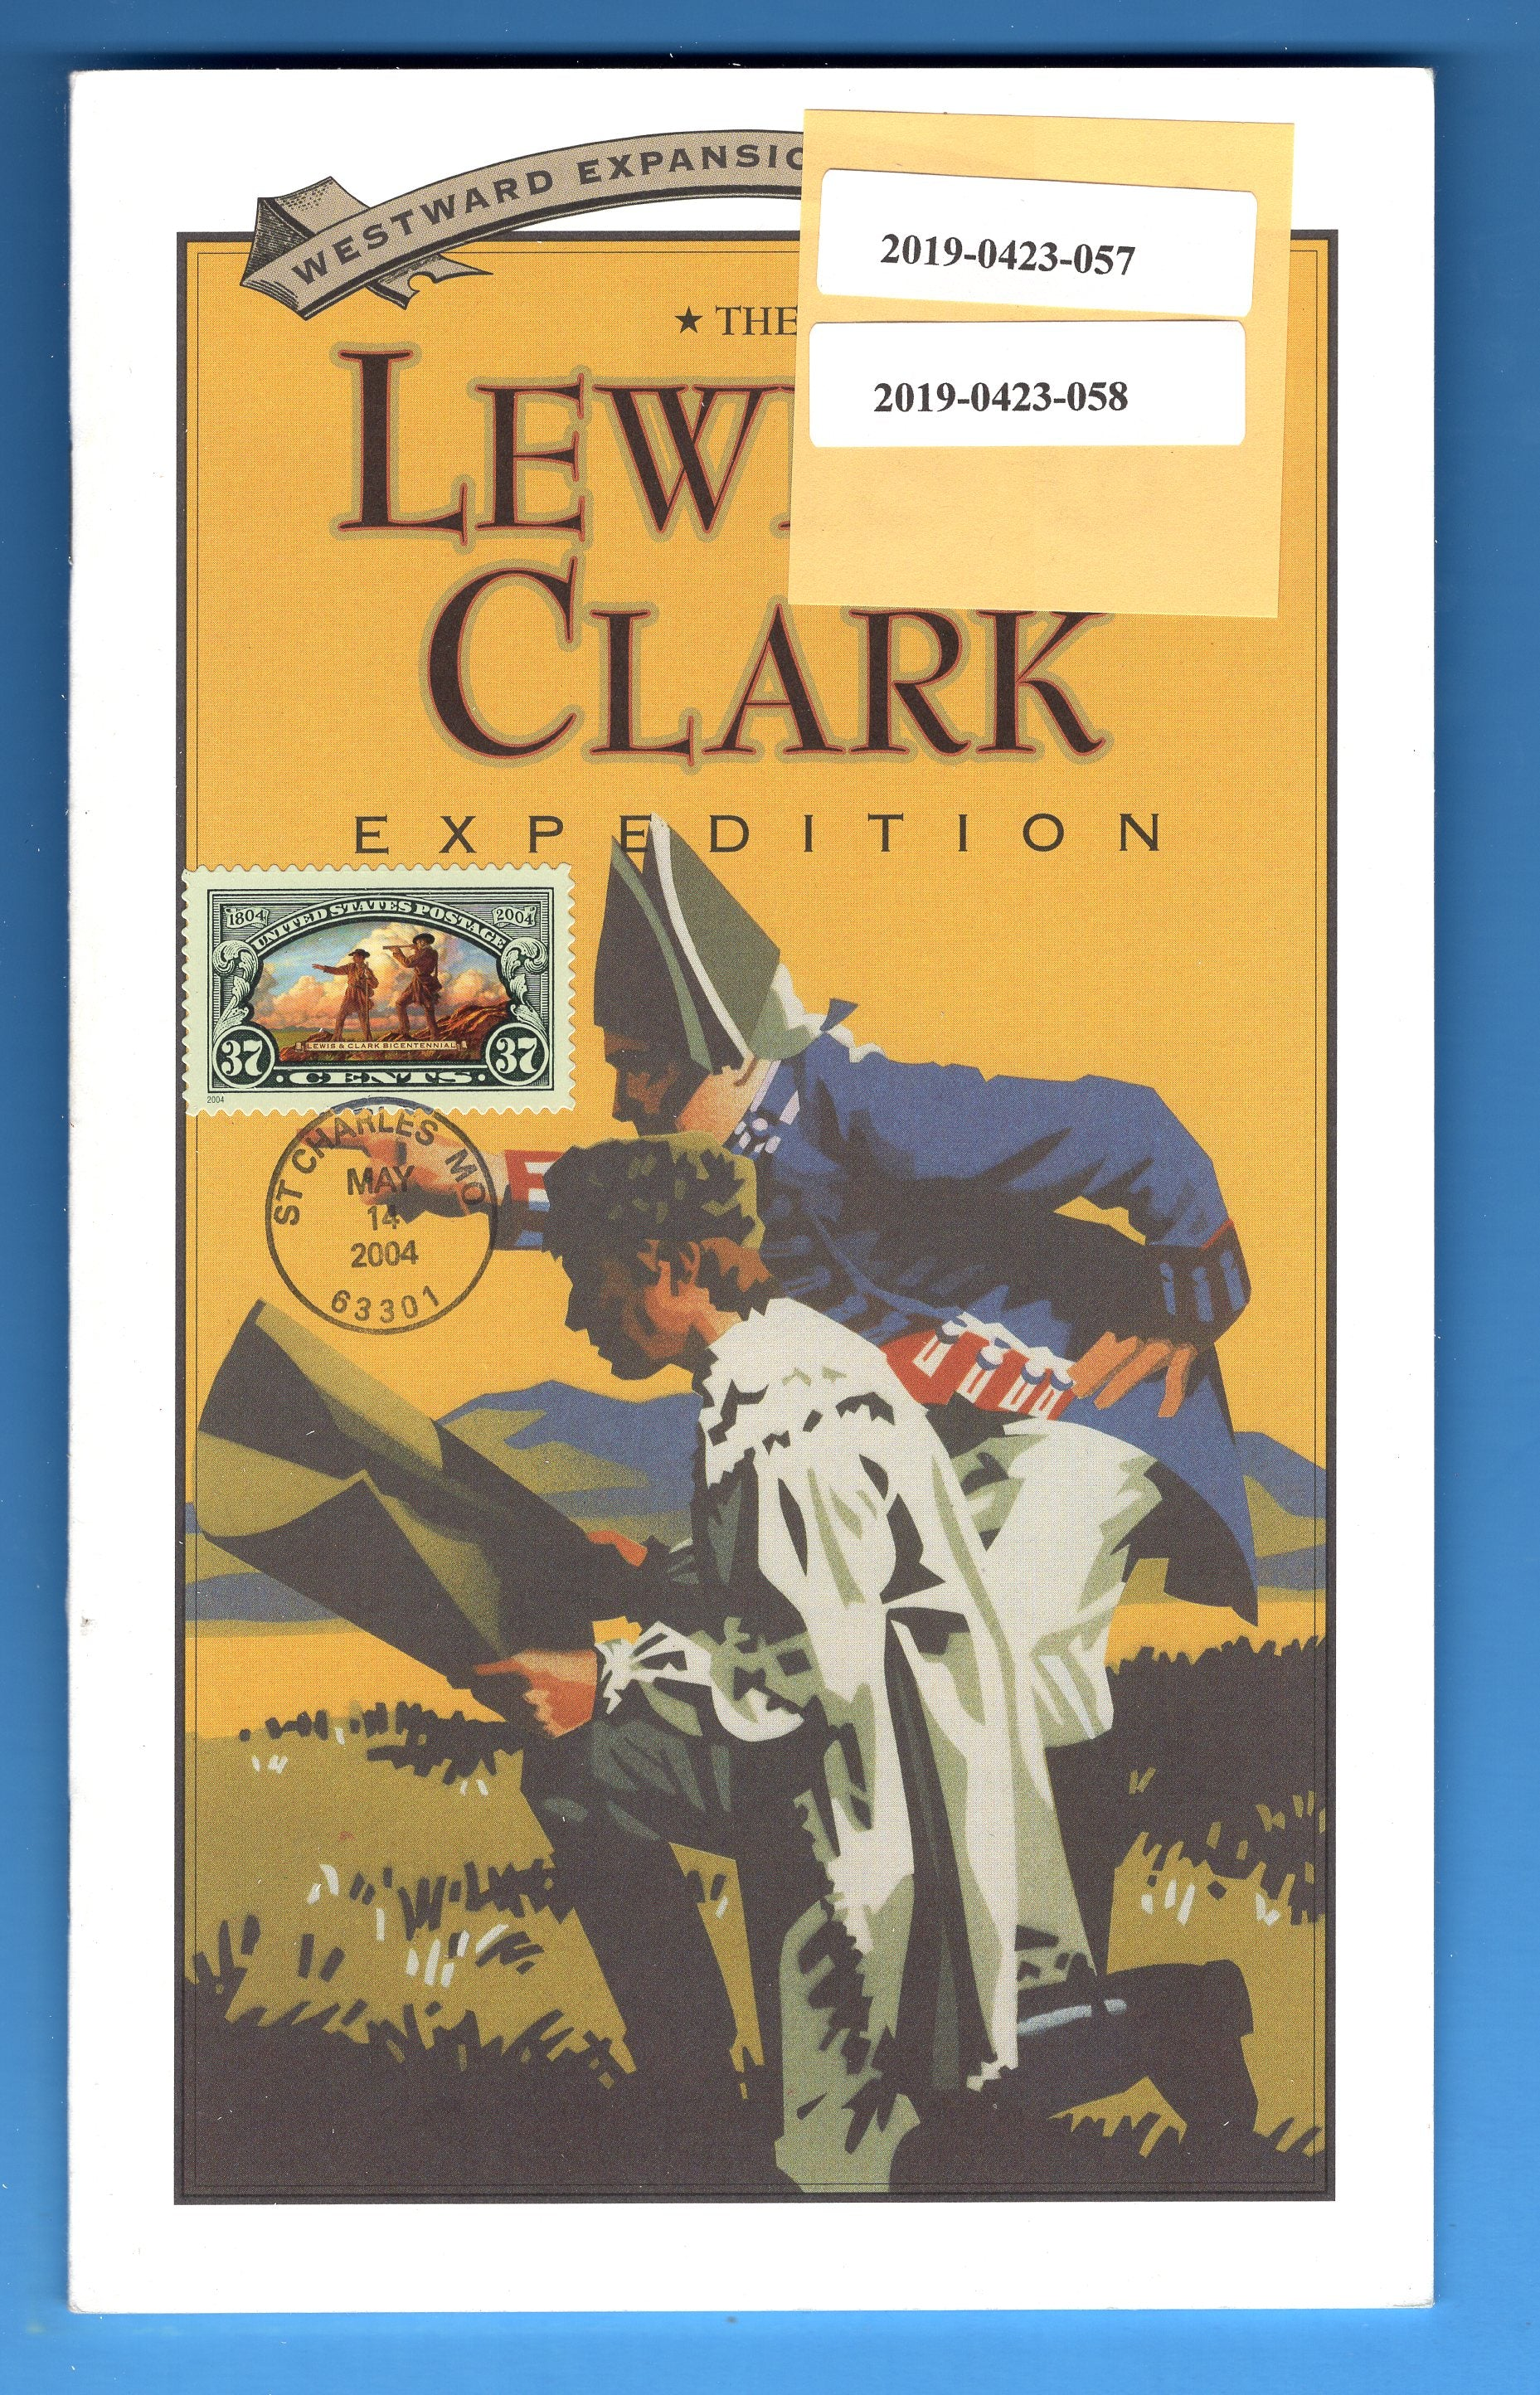 Scott 3854 Lewis & Clark Expeditiuon First of Issue on Westward Expansion Series No. 1 Pamphlet by Jefferson National Parks Assn. - Nineteen Pages